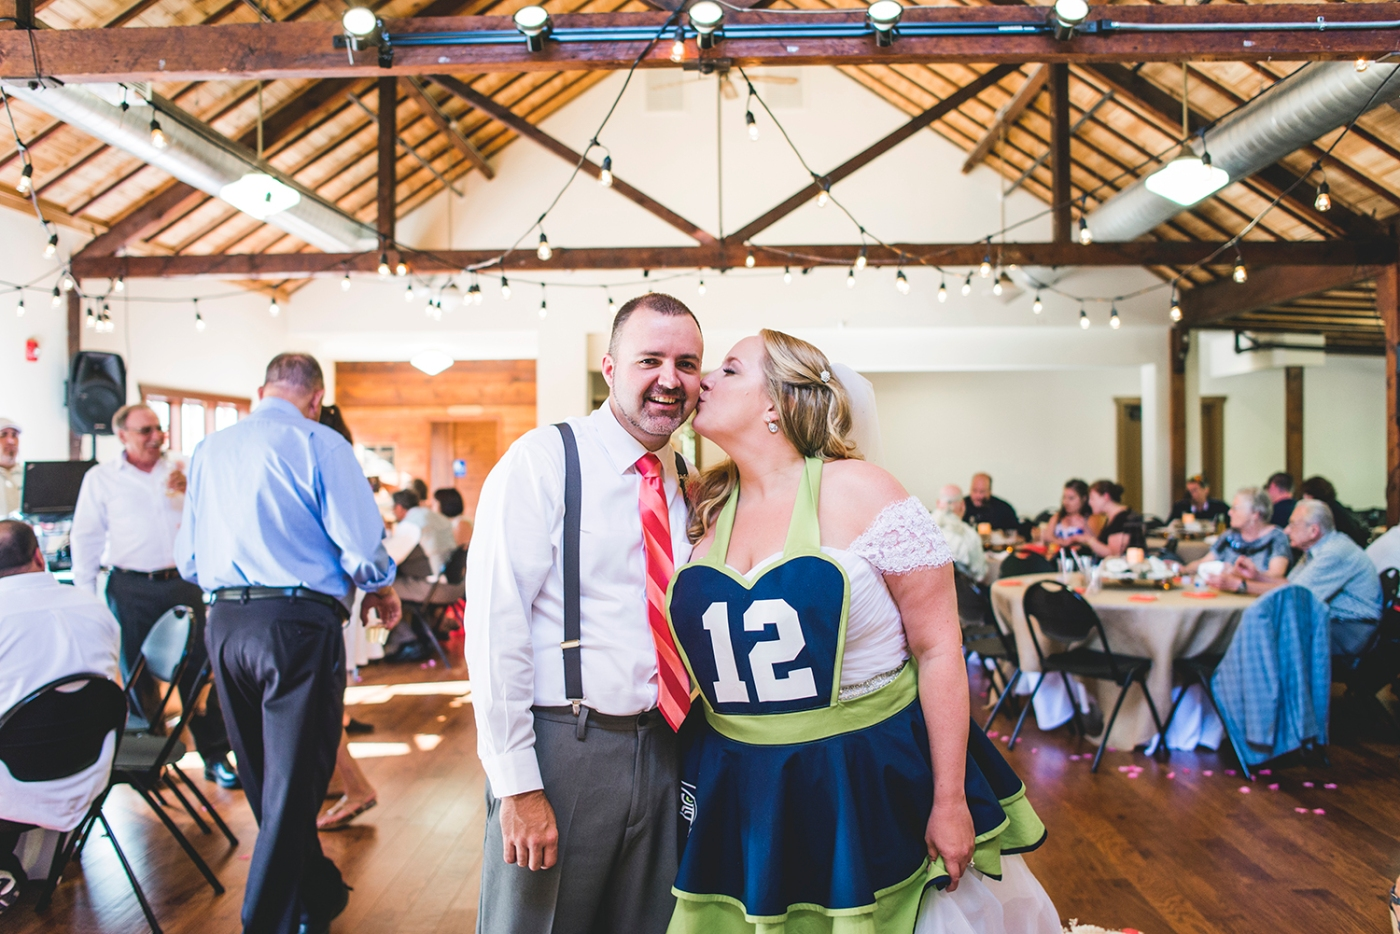 Jane_Speleers_Seattle_photography_Katie_and_Steve_2016_Des_Moines_Marina_Wedding_DSC_1962